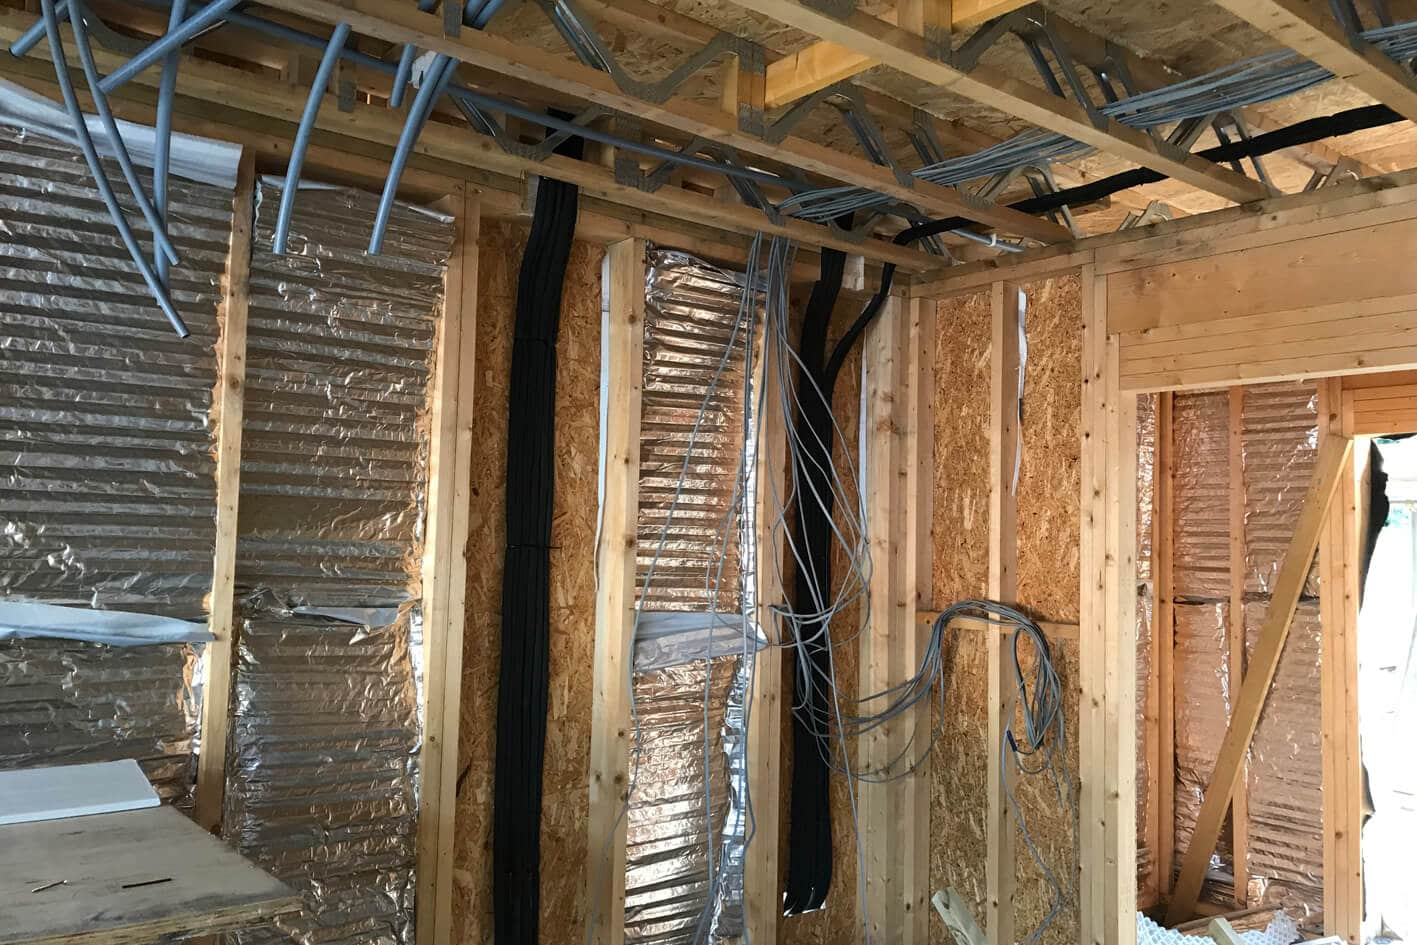 Scandia Hus new build in progress, wall shell with wires before MVHR system fitted by SubCool FM